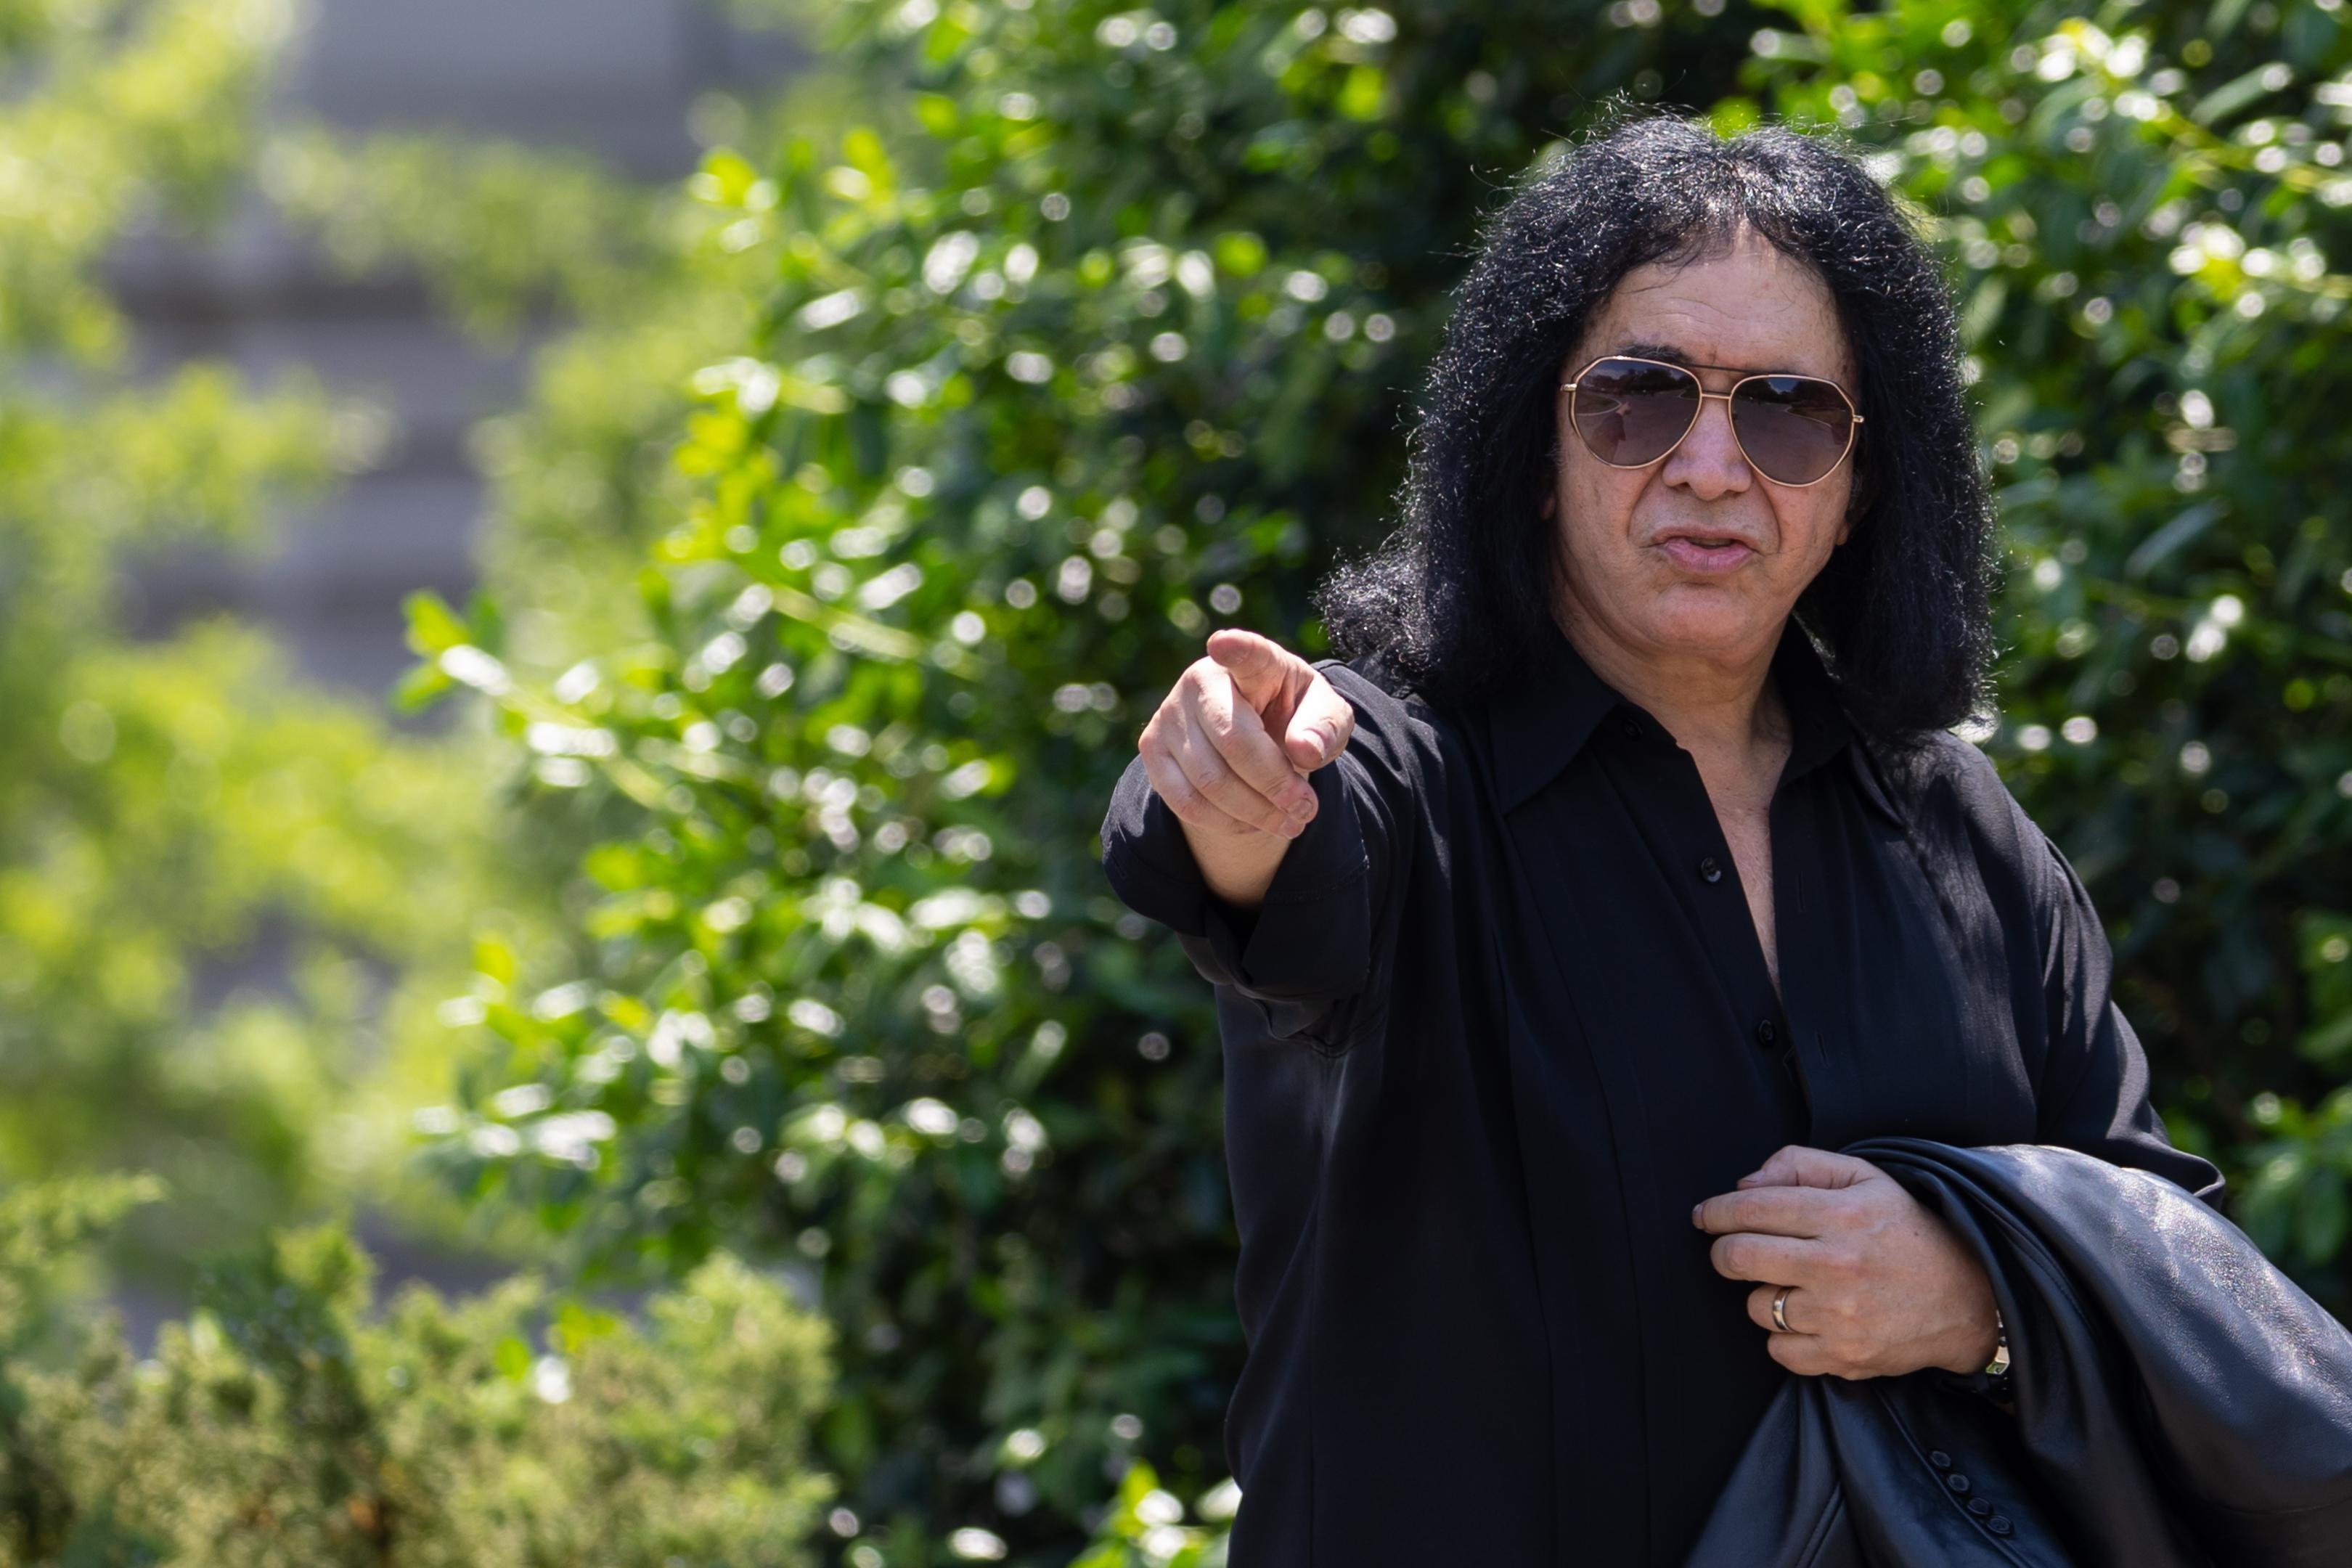 Gene Simmons shares bizarre cereal habit which involves adding ice cubes